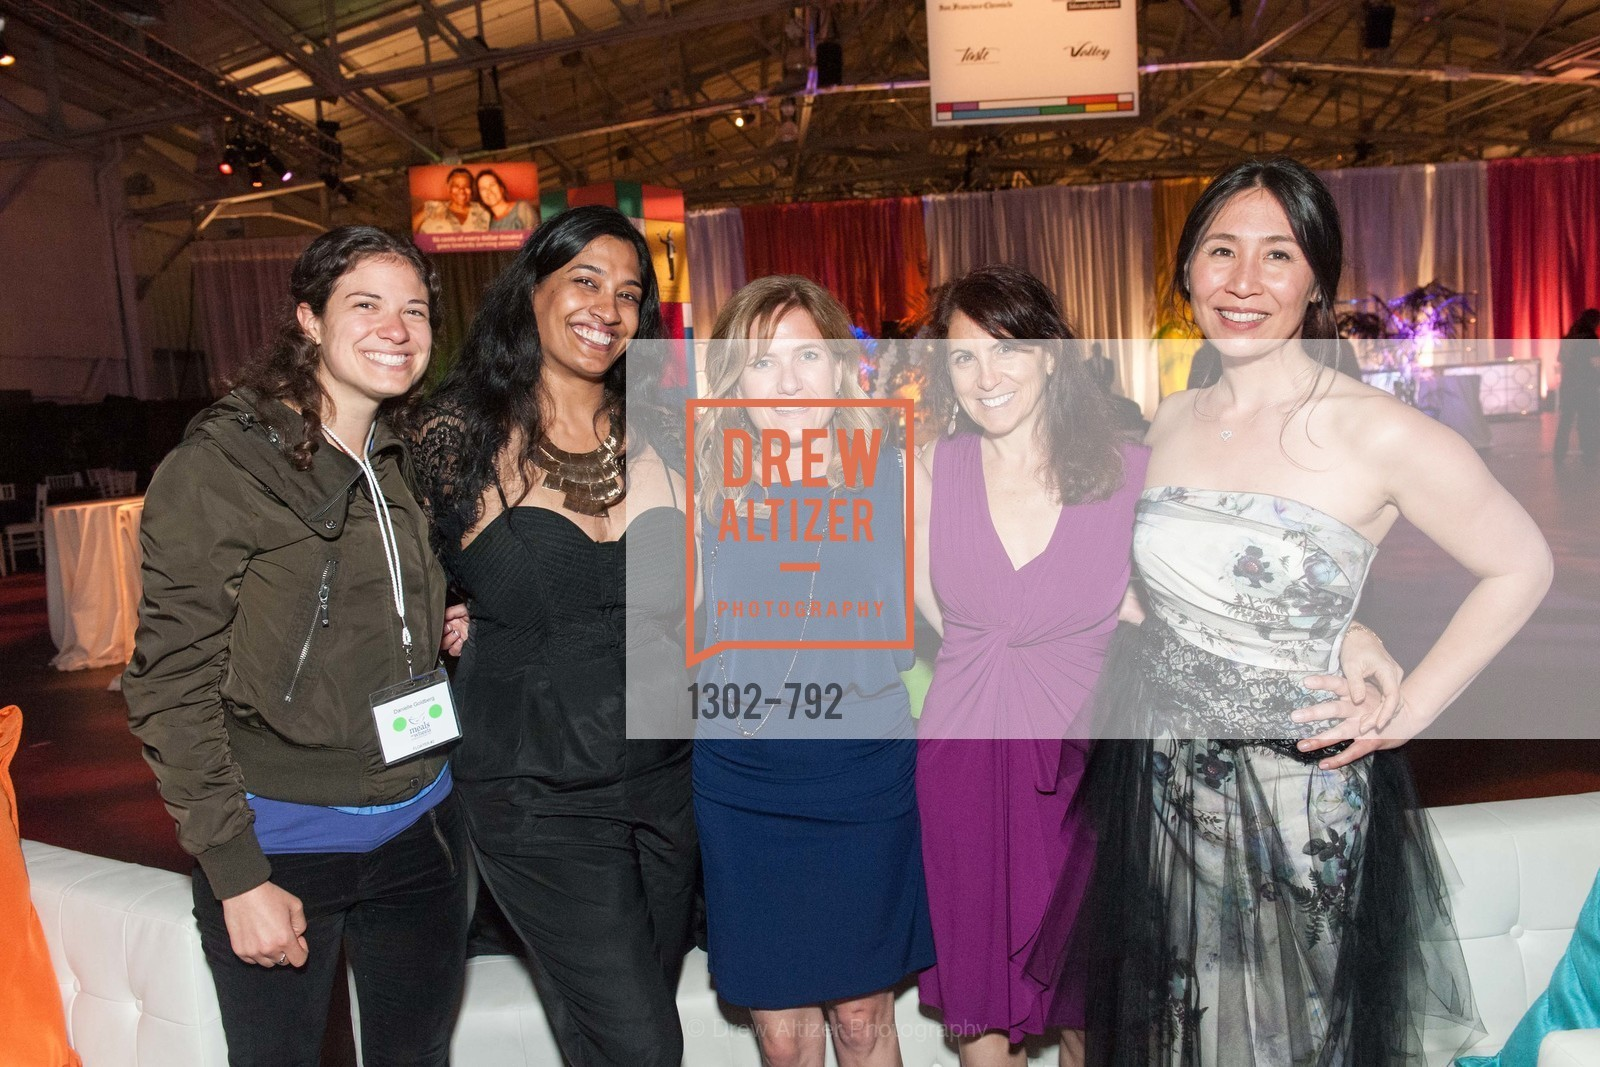 Danielle Goldberg, Neetha Iyer, Jan Busch, Deb Flazer, Vivien Thorp, MEALS ON WHEELS OF SAN FRANCISCO'S 28th Annual Star Chefs and Vintners Gala, US, April 19th, 2015,Drew Altizer, Drew Altizer Photography, full-service agency, private events, San Francisco photographer, photographer california